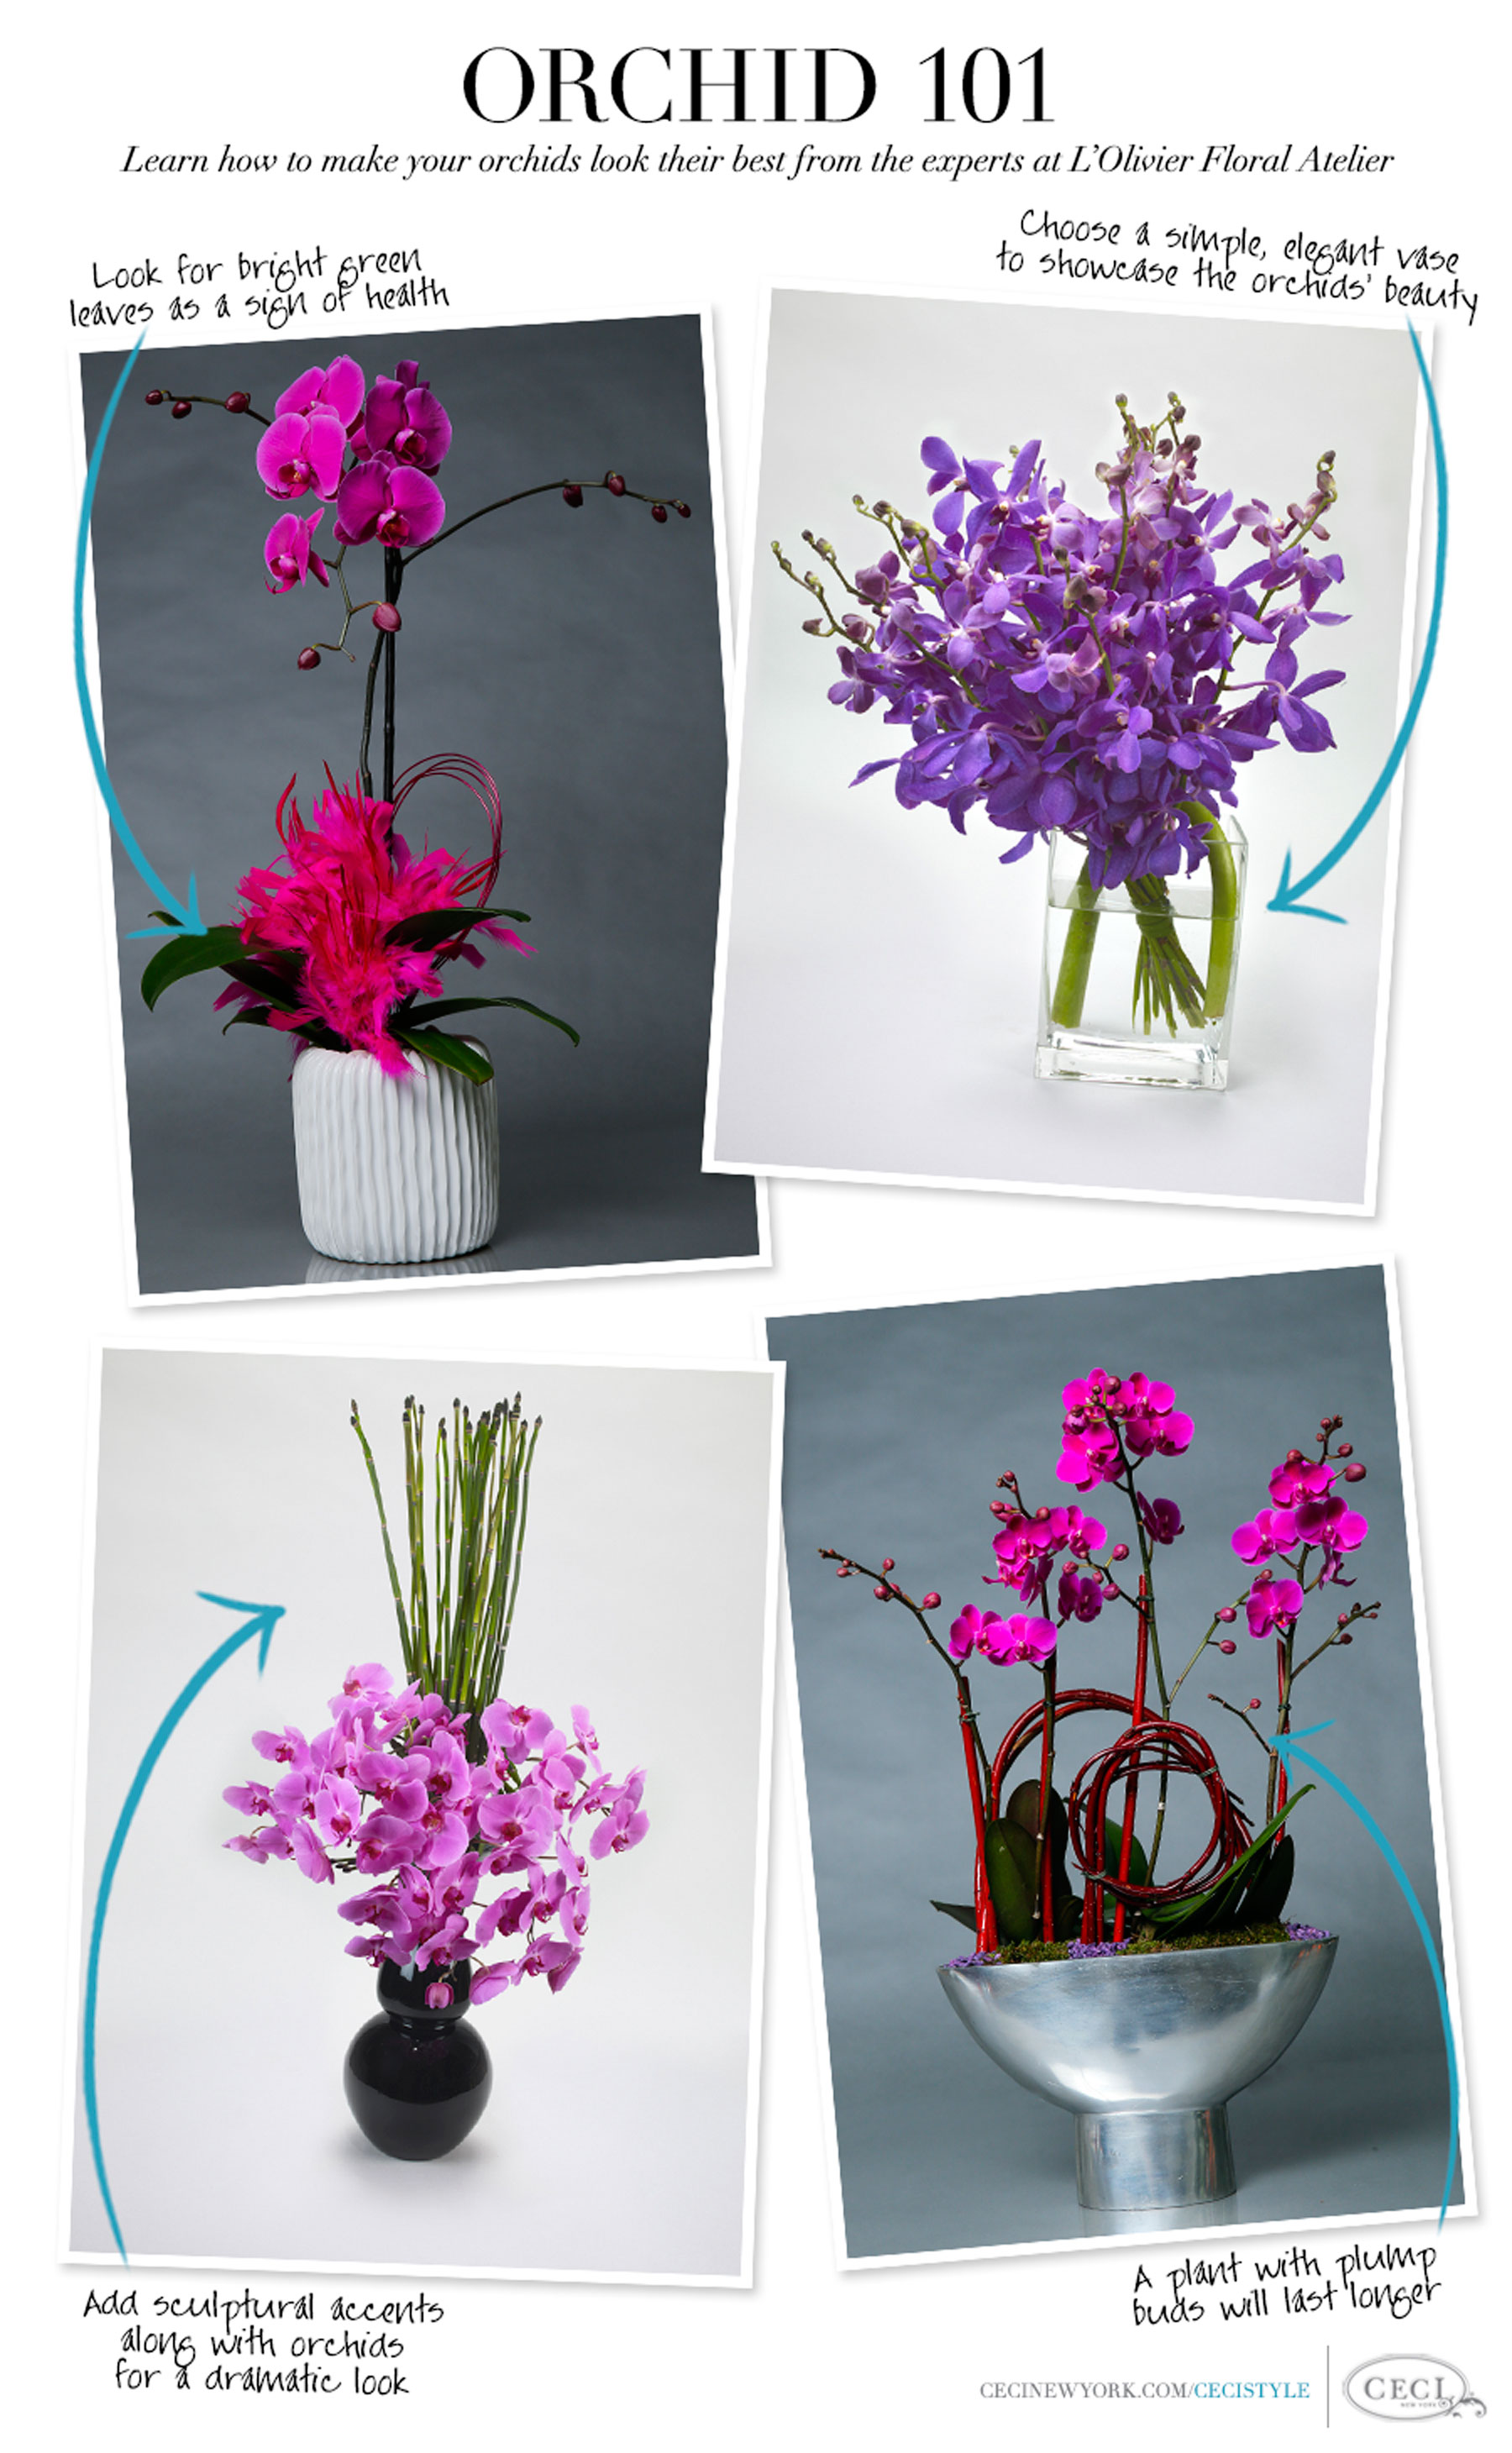 Orchid 101 - Learn how to make your orchids look their best from the experts at L'Olivier Floral Atelier